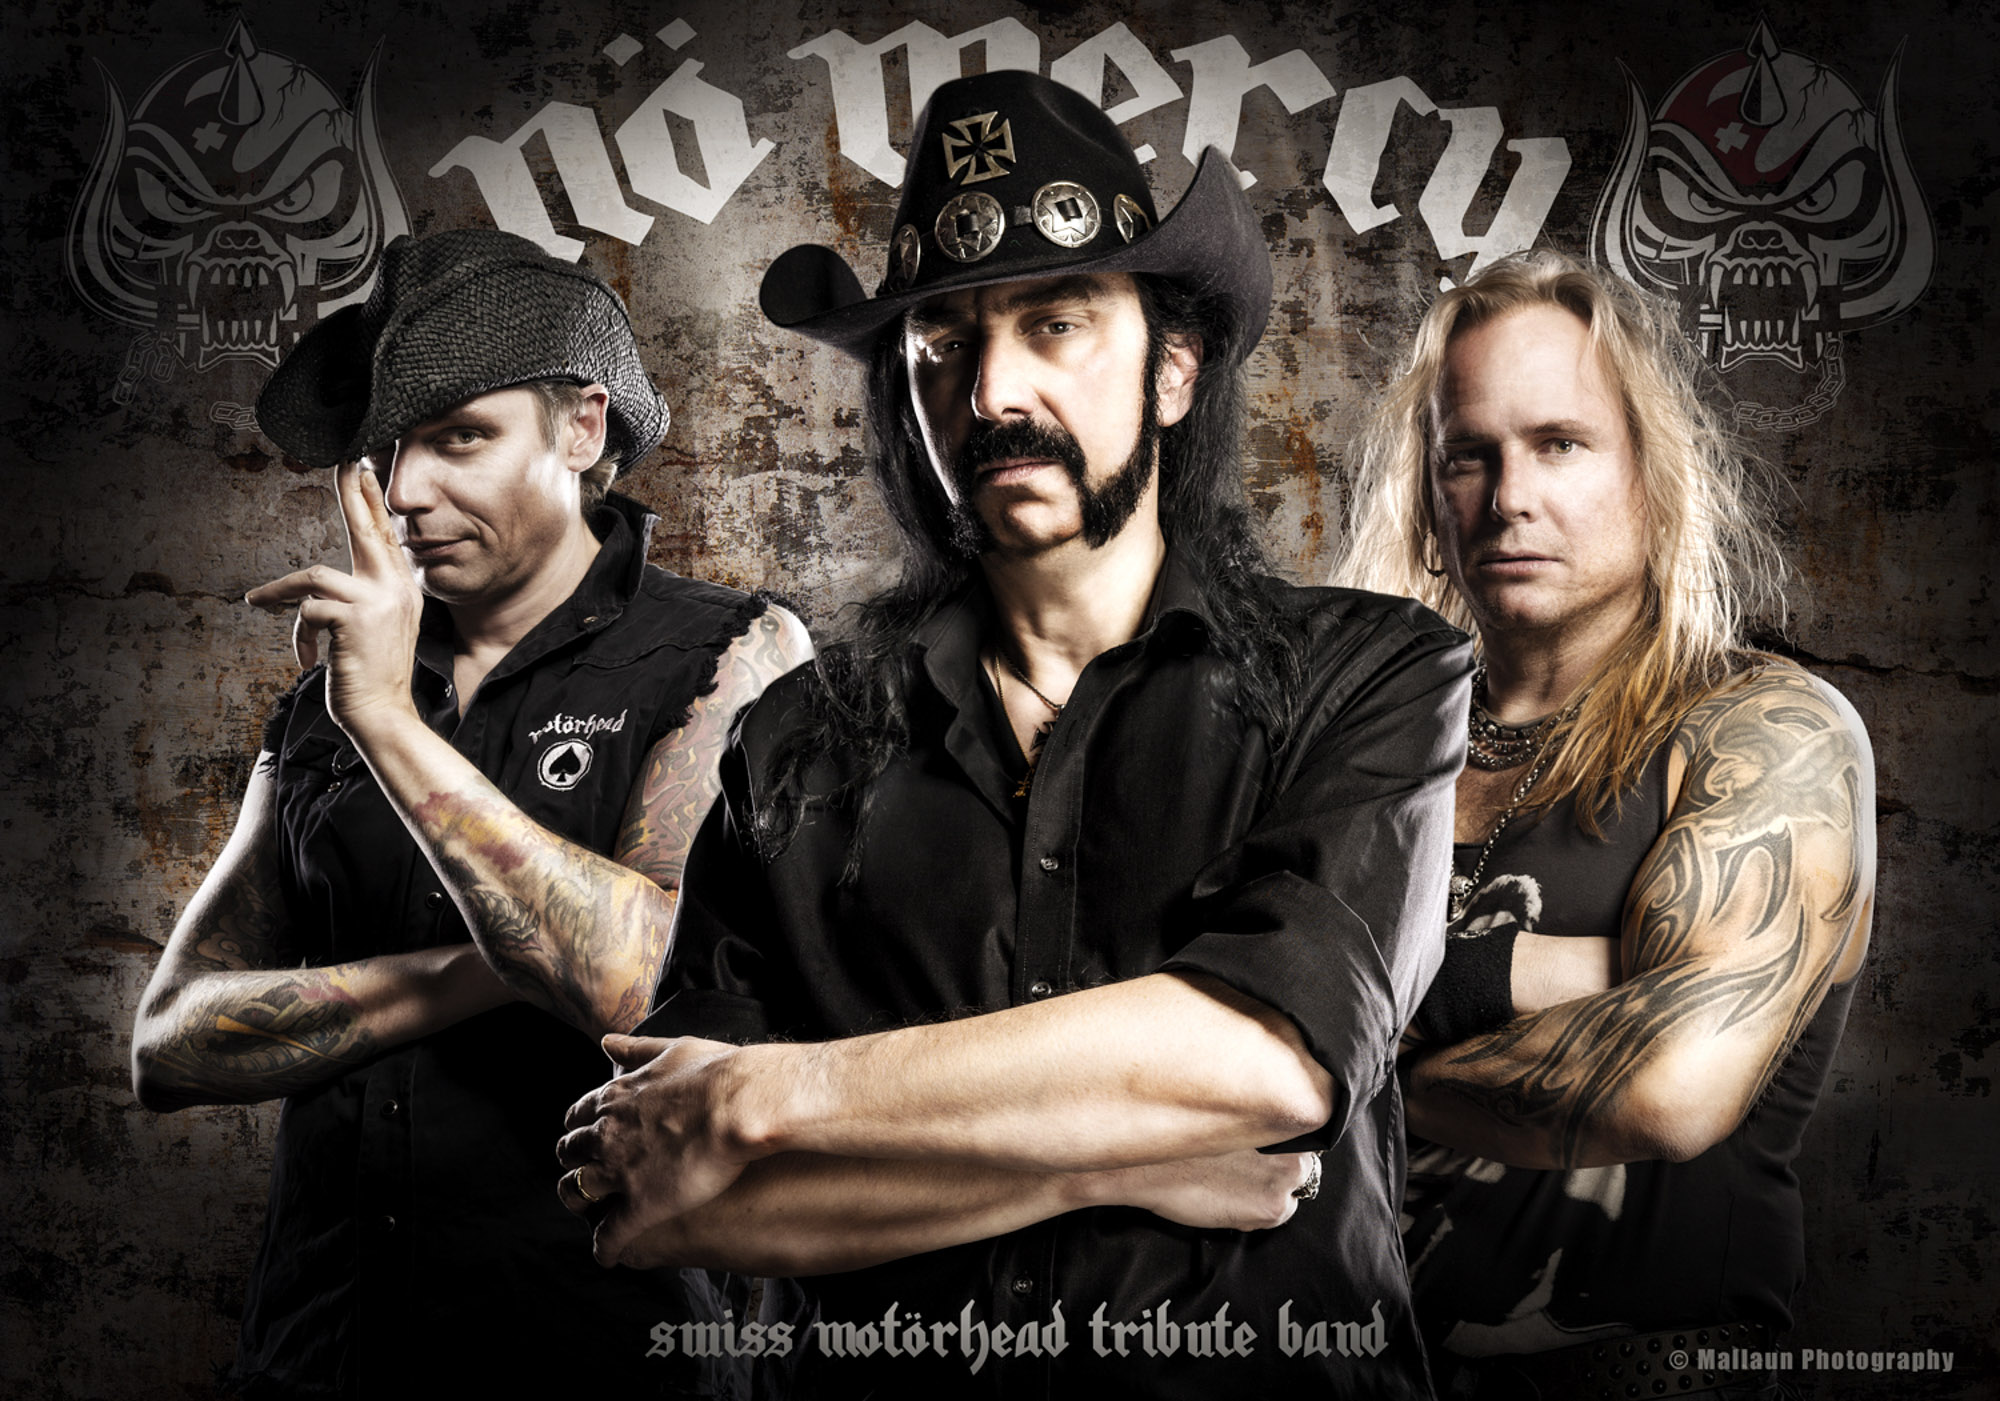 Motörhead Cover Band © Mallaun Photography